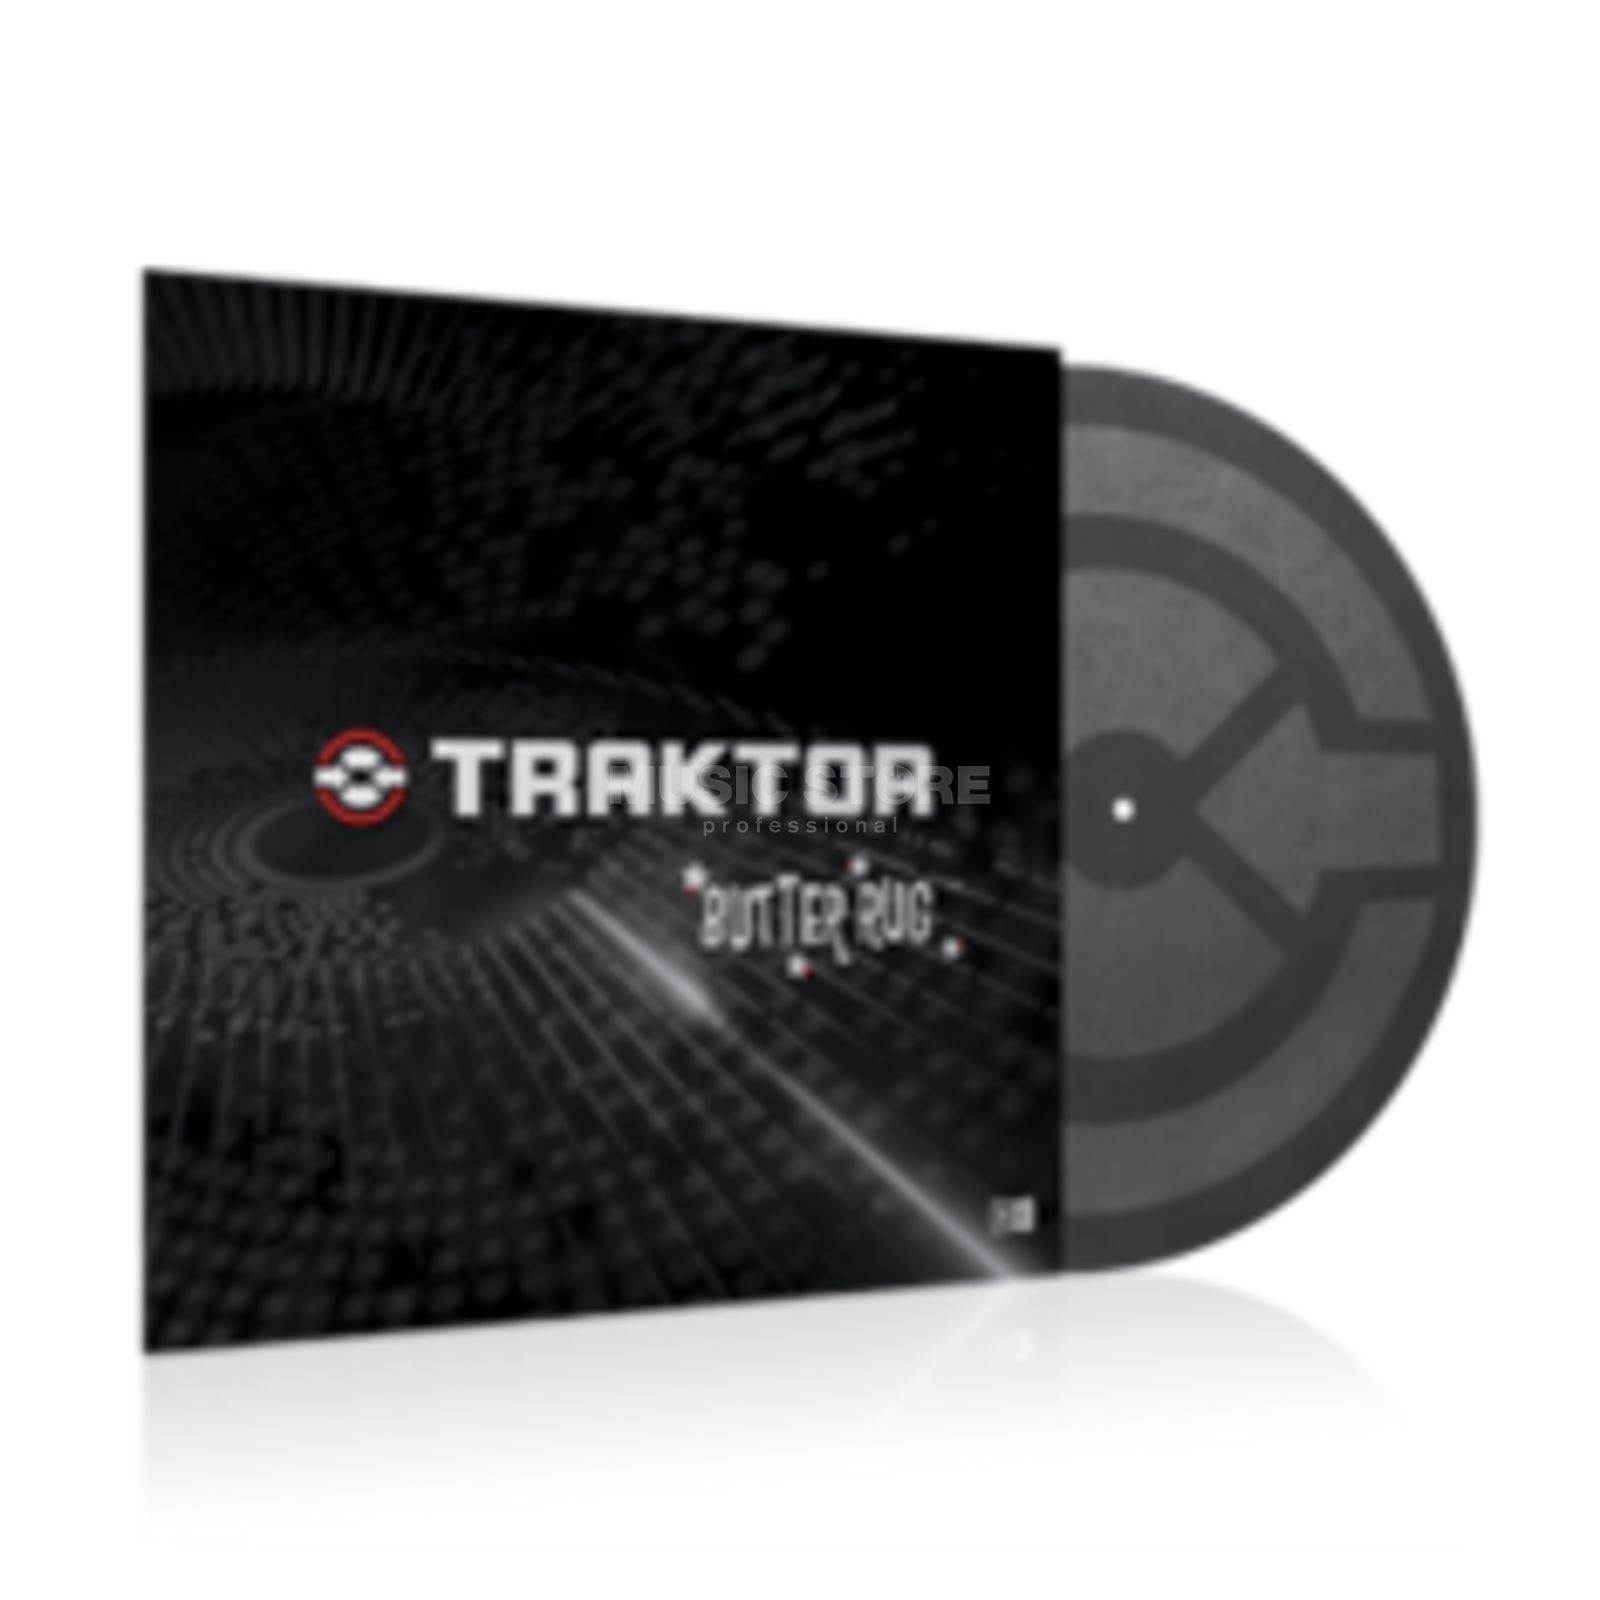 Native Instruments Traktor Butter Rugs Slipmats Product Image